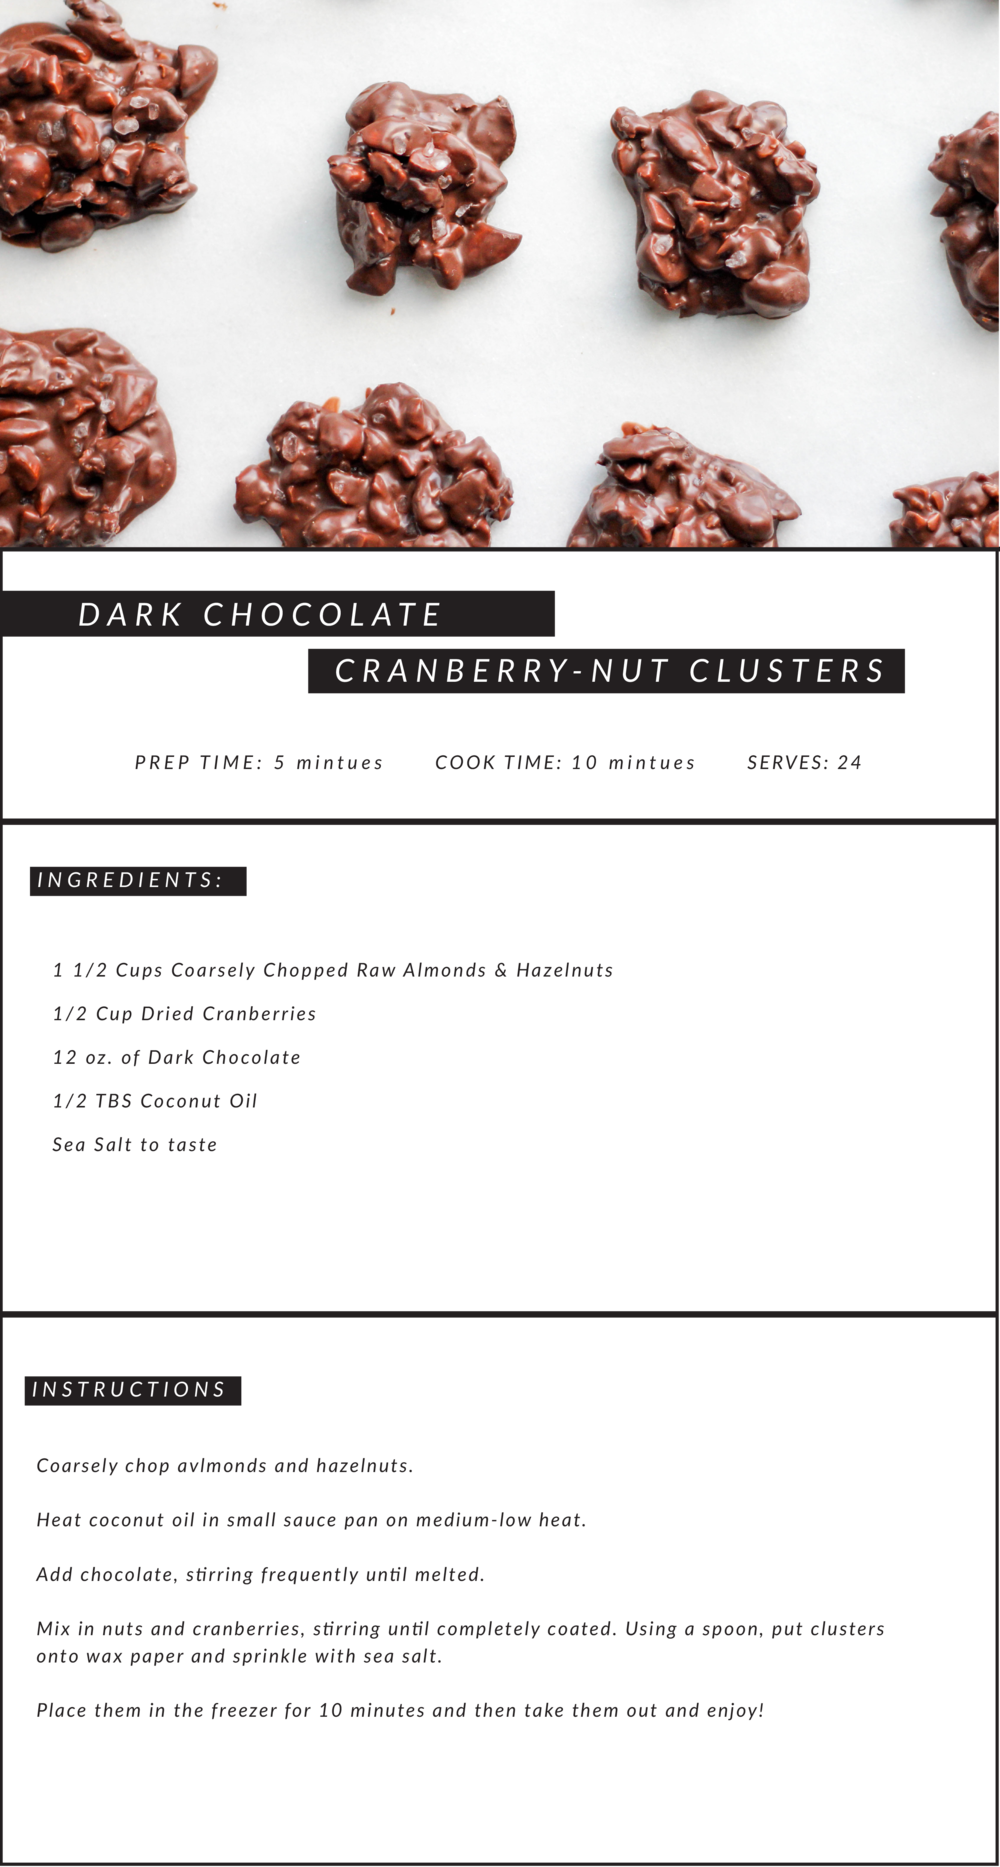 Dark Chocolate Cranberry-Nut Clusters | Jennifer Diaz